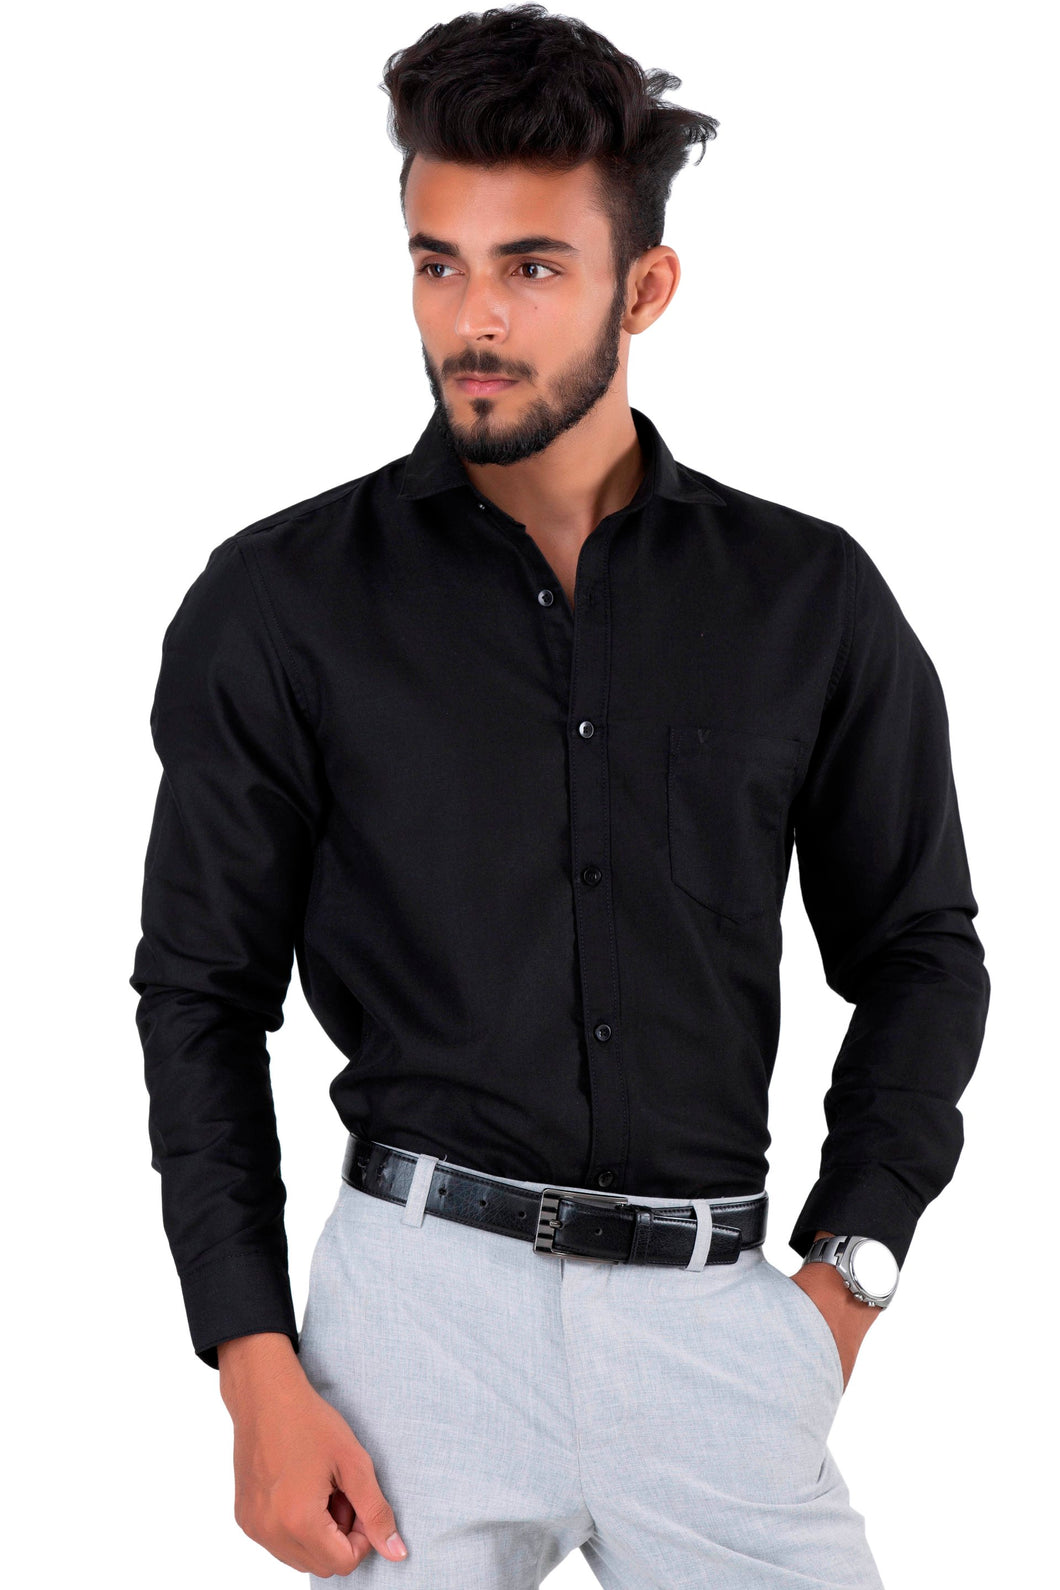 Full Sleeve Navy Black Casual Shirt